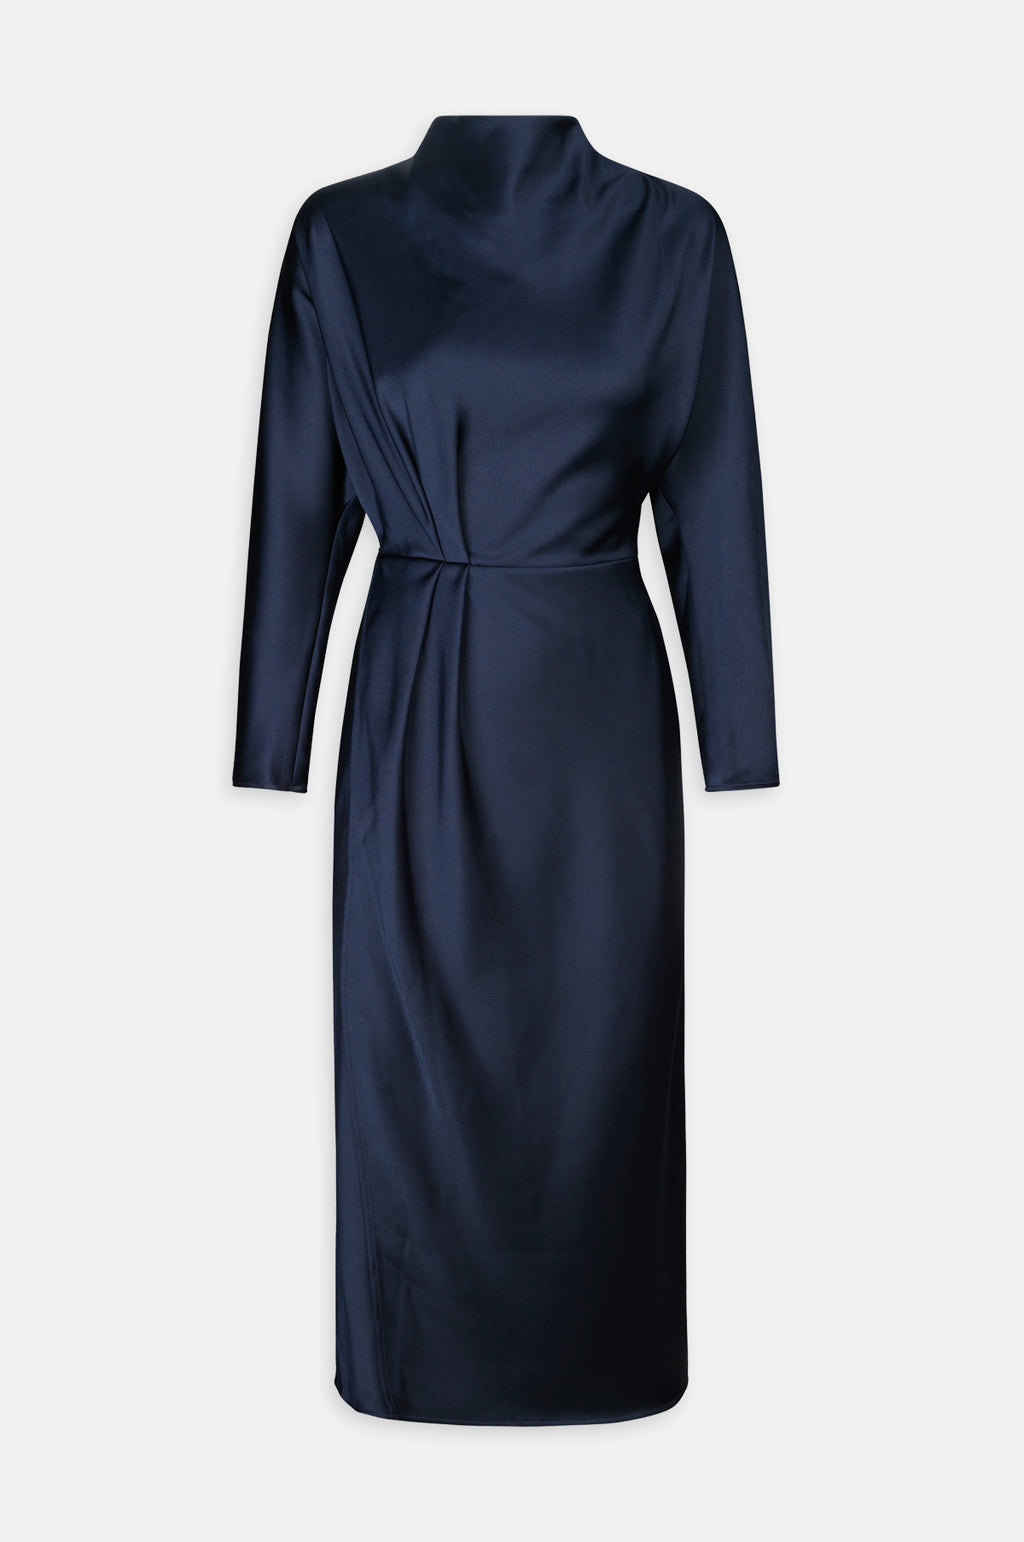 Damai Dress in Midnight